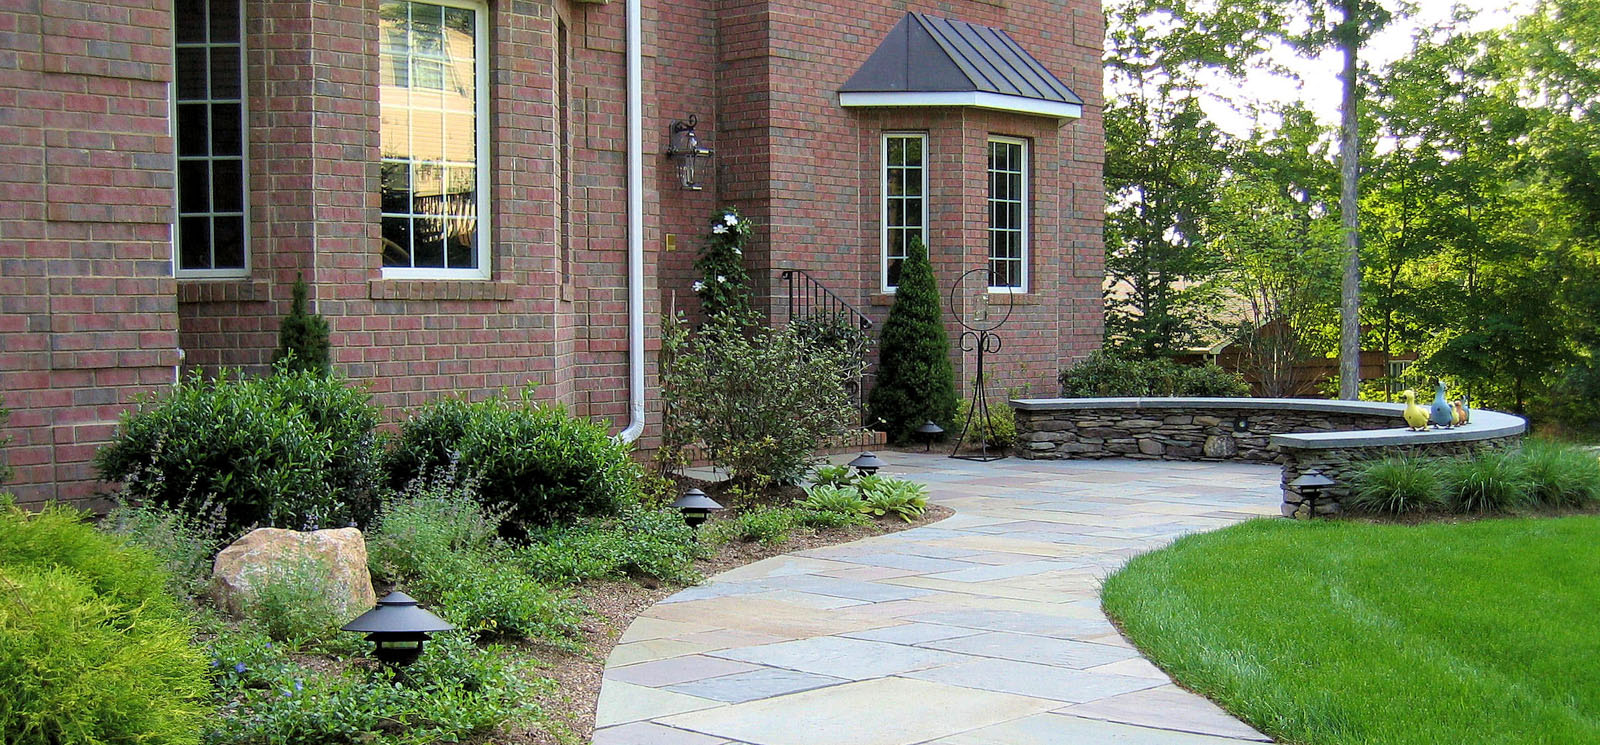 bluestone walkway with patio area and curved seat wall